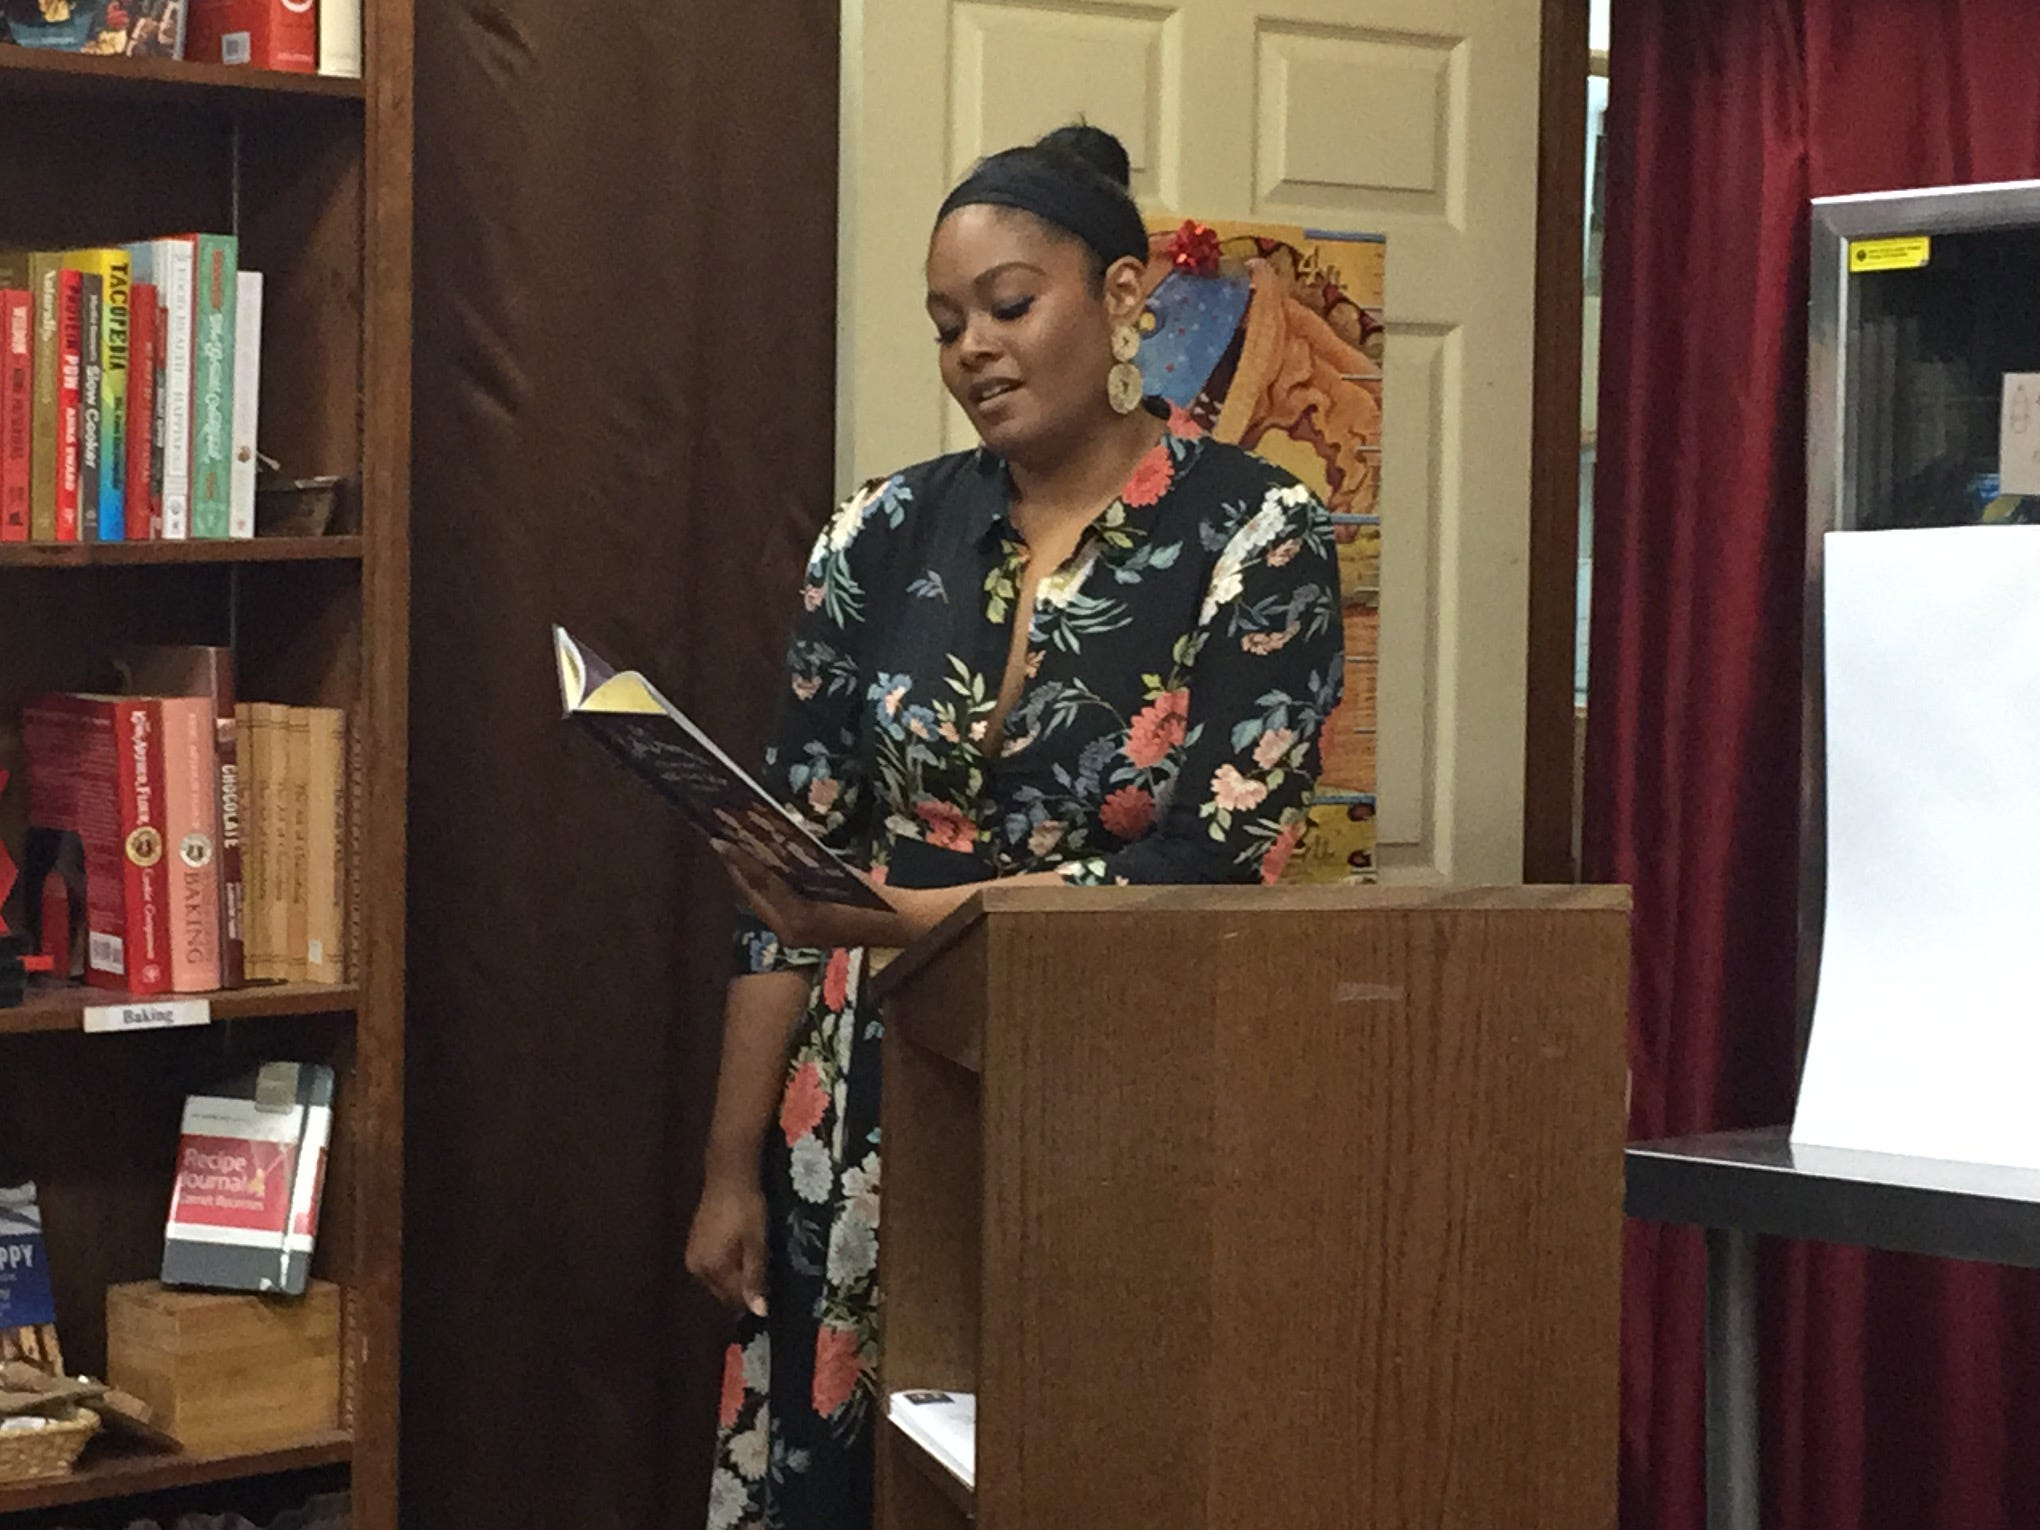 Accomack author Vashti Harrison dares young girls to dream in new book